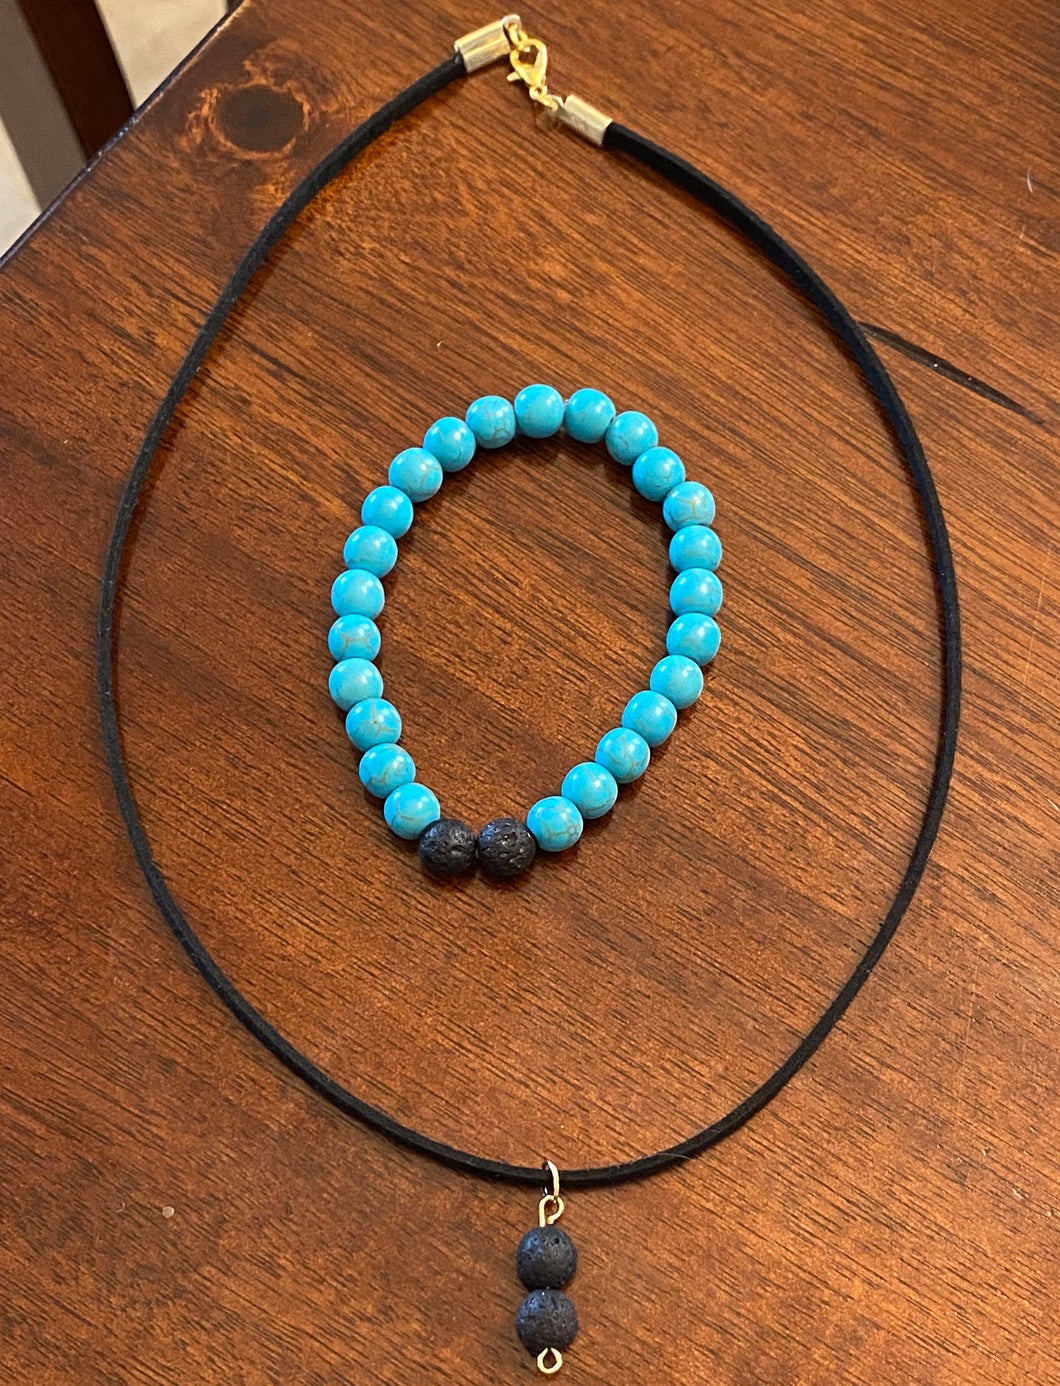 Adult Diffuser Bracelet or Necklace